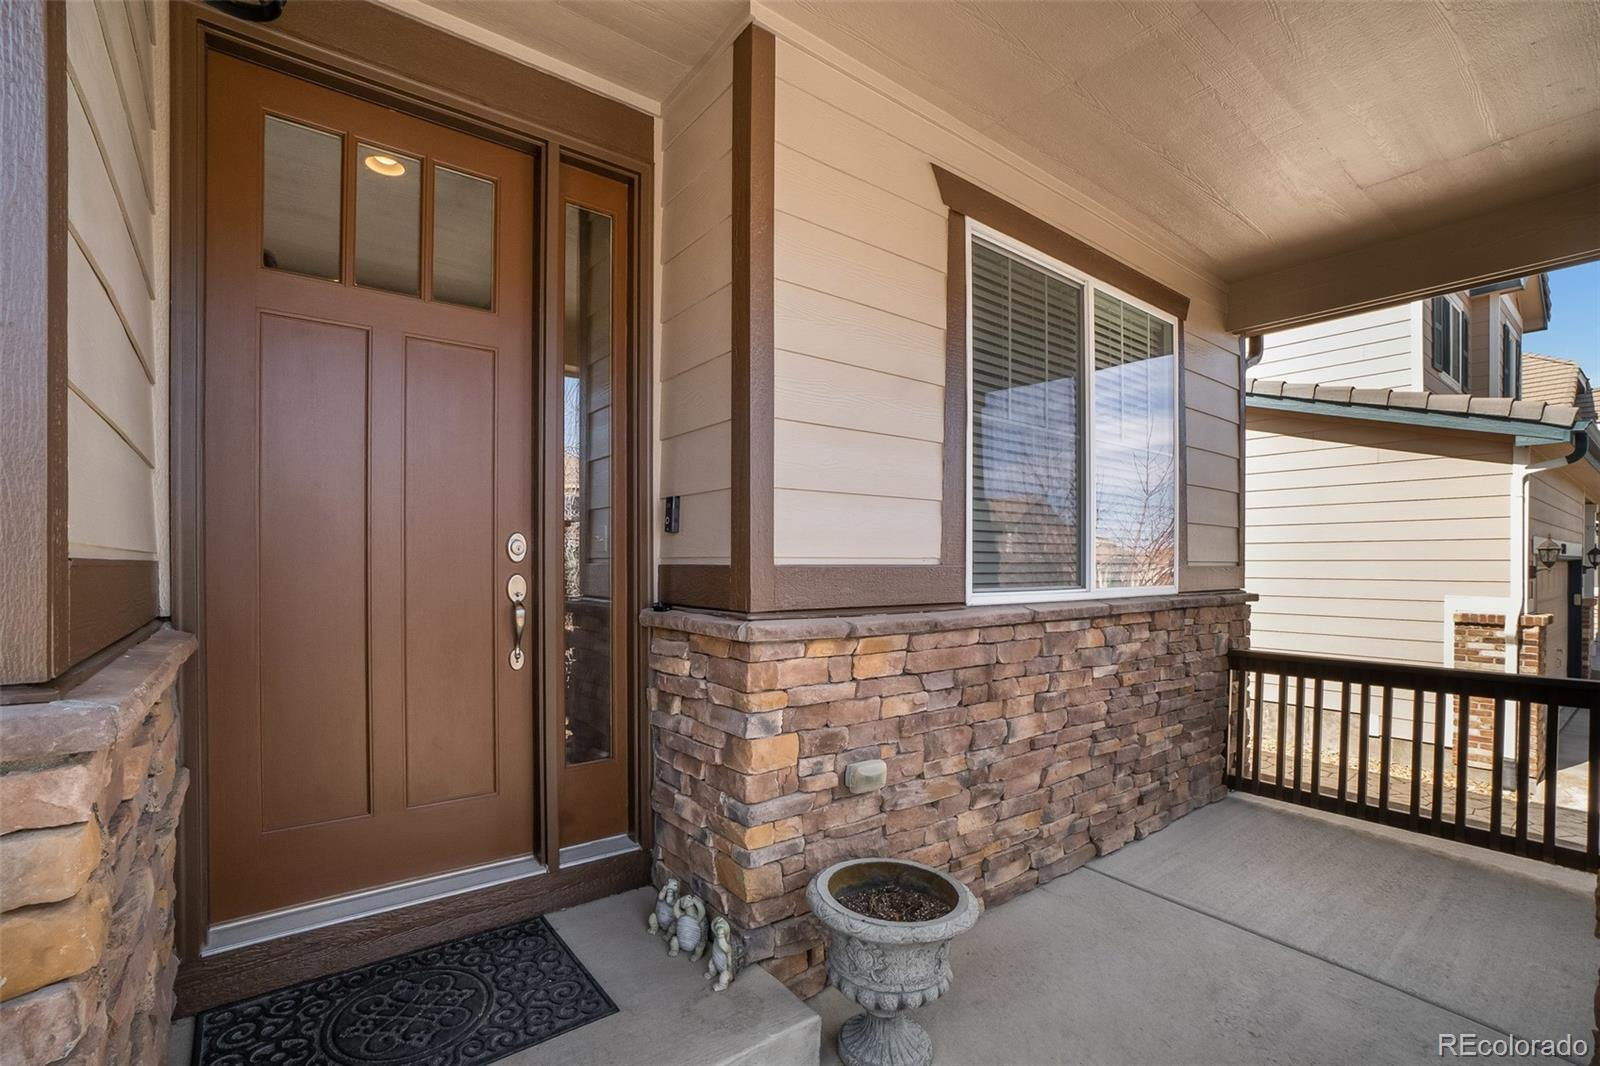 MLS# 6595199 - 3 - 10255 Greenfield Circle, Parker, CO 80134